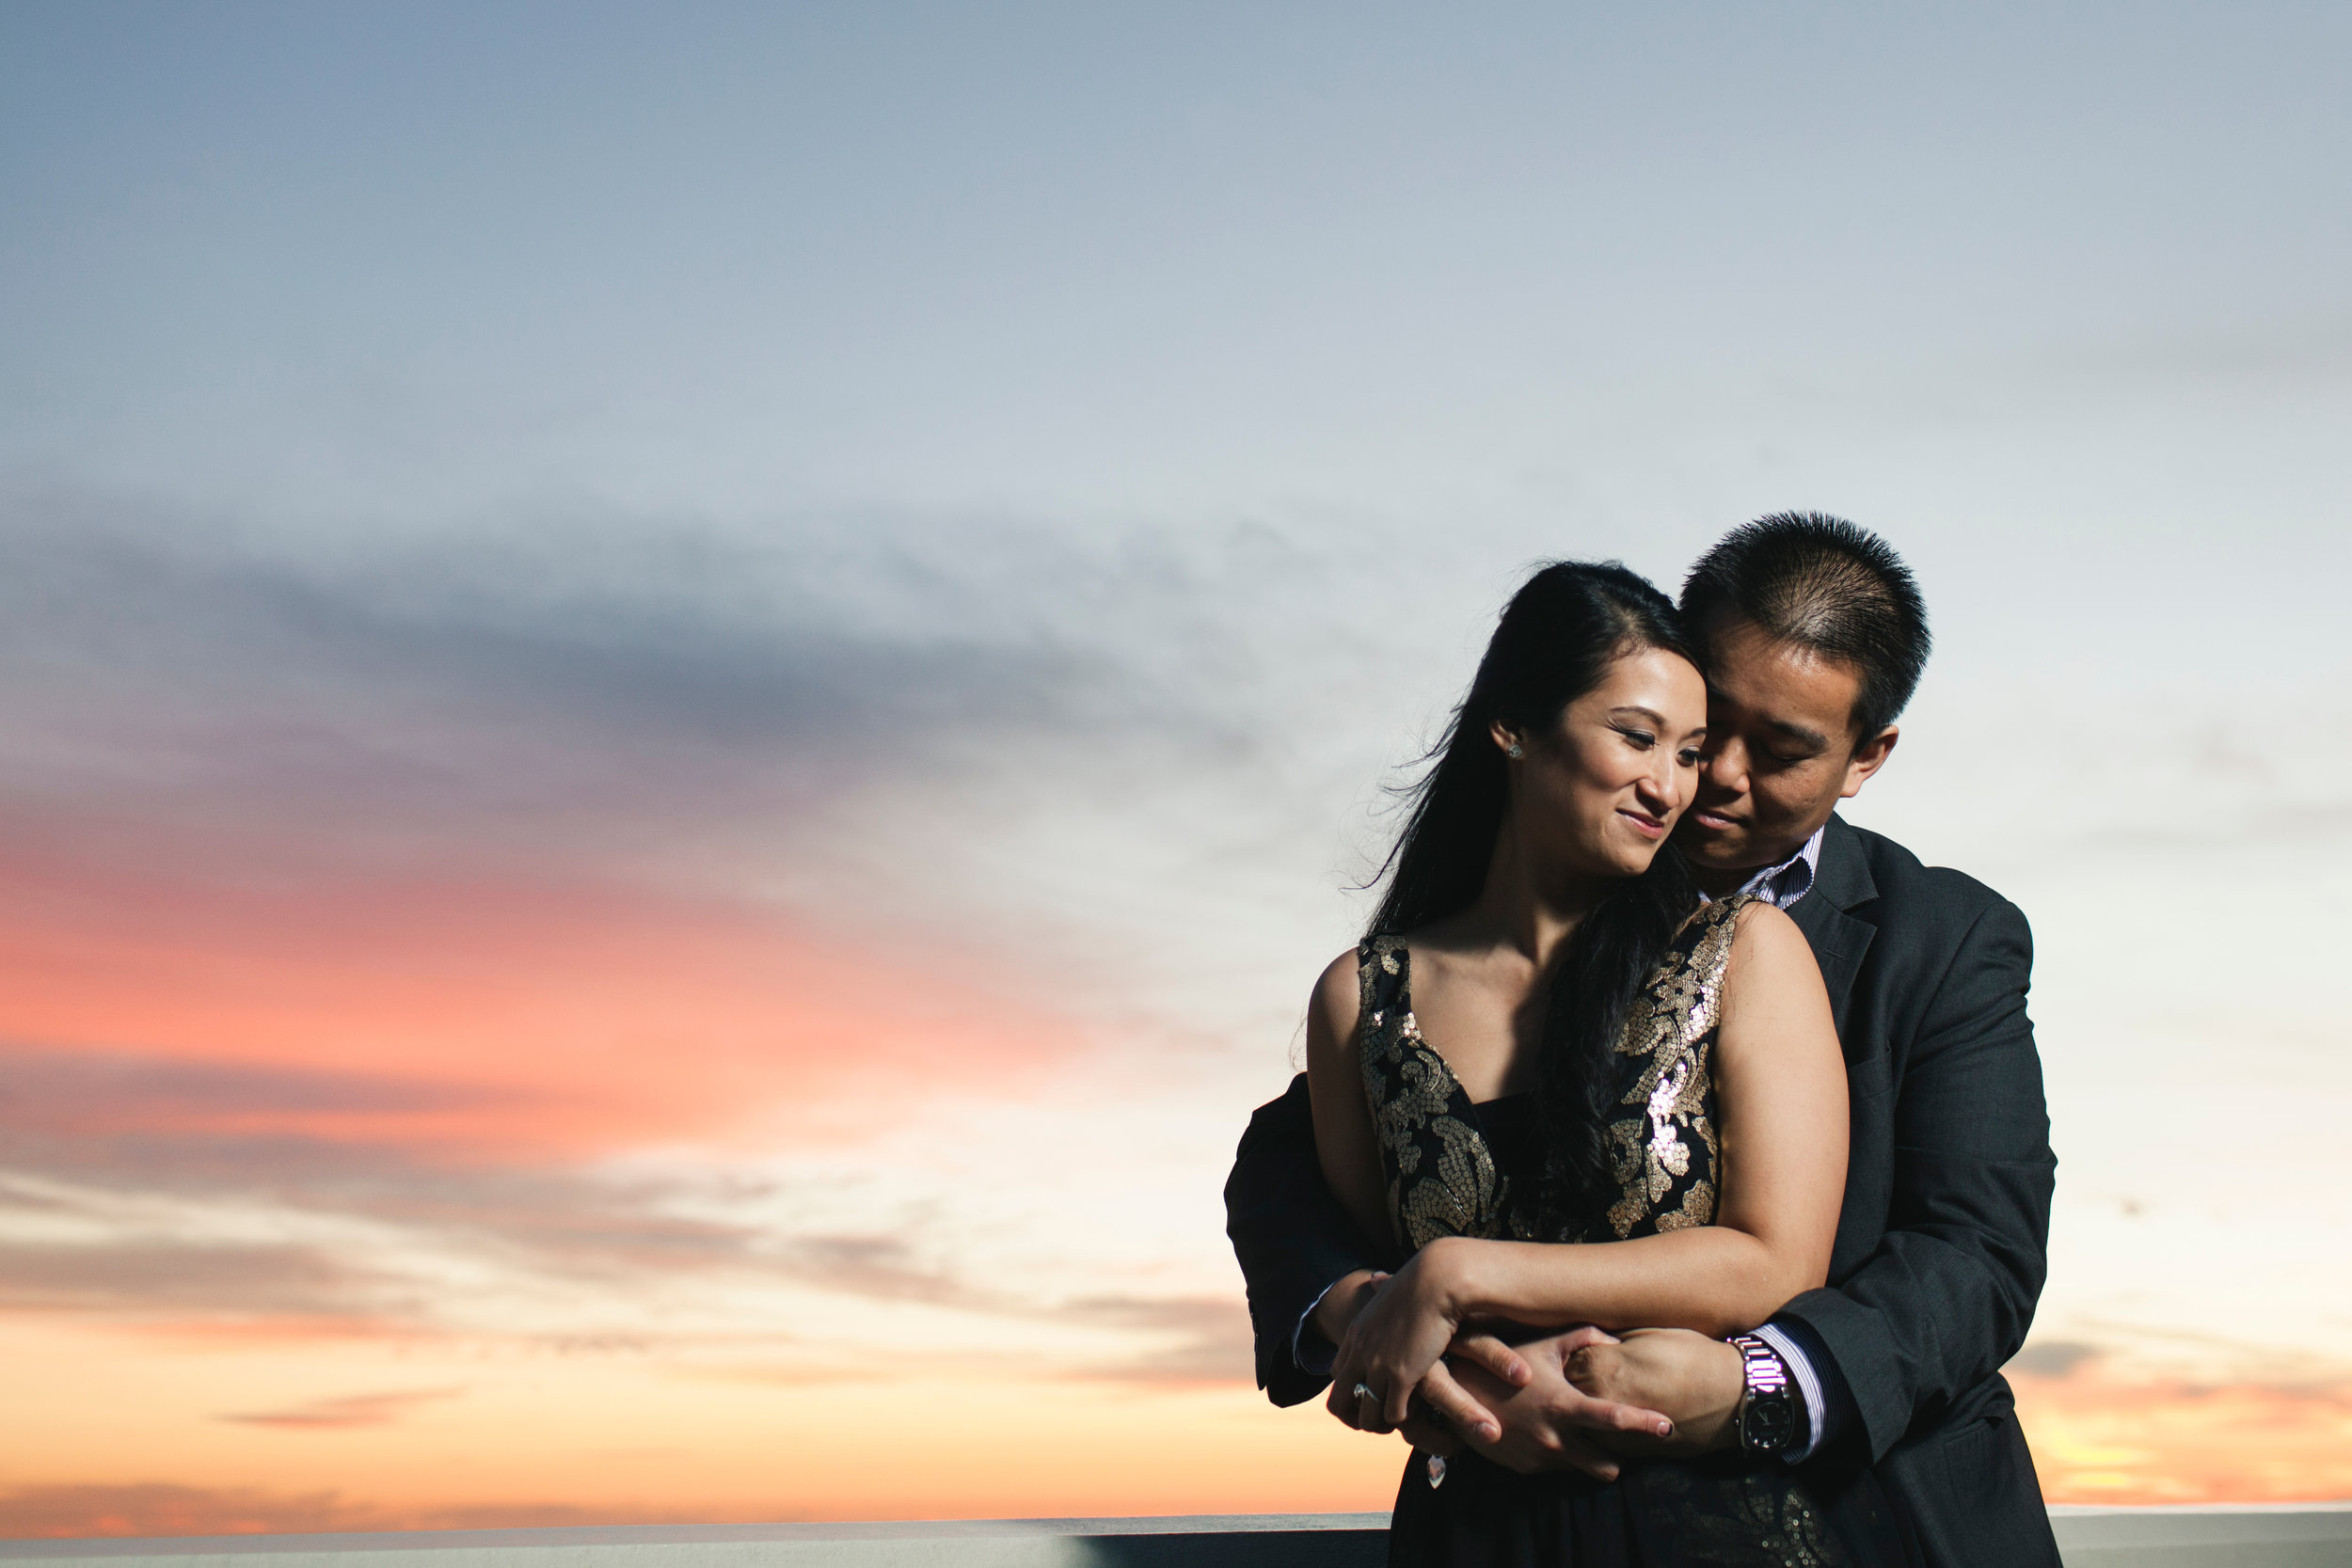 Griffith Observatory Engagement Photos Nicole and Vien-8633.jpg